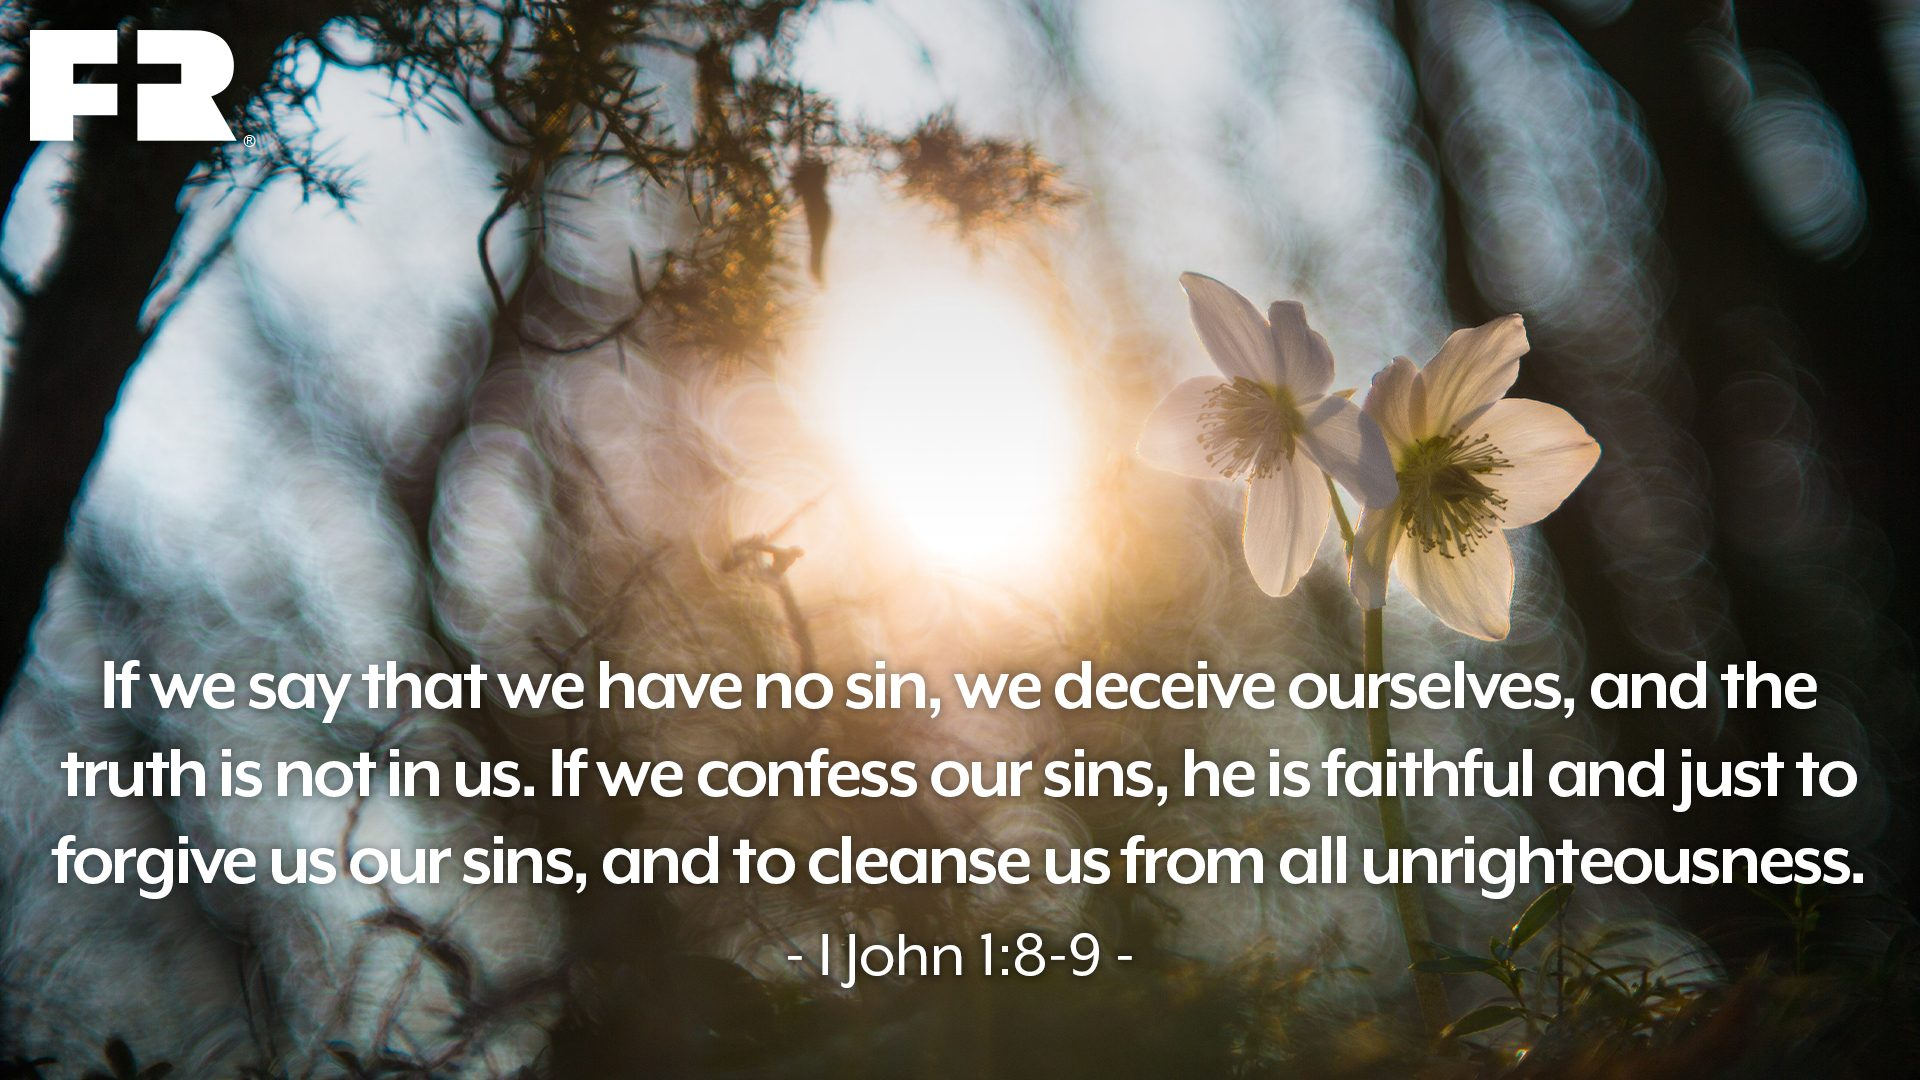 """If we say that we have no sin, we deceive ourselves, and the truth is not in us. If we confess our sins, he is faithful and just to forgive us our sins, and to cleanse us from all unrighteousness."""